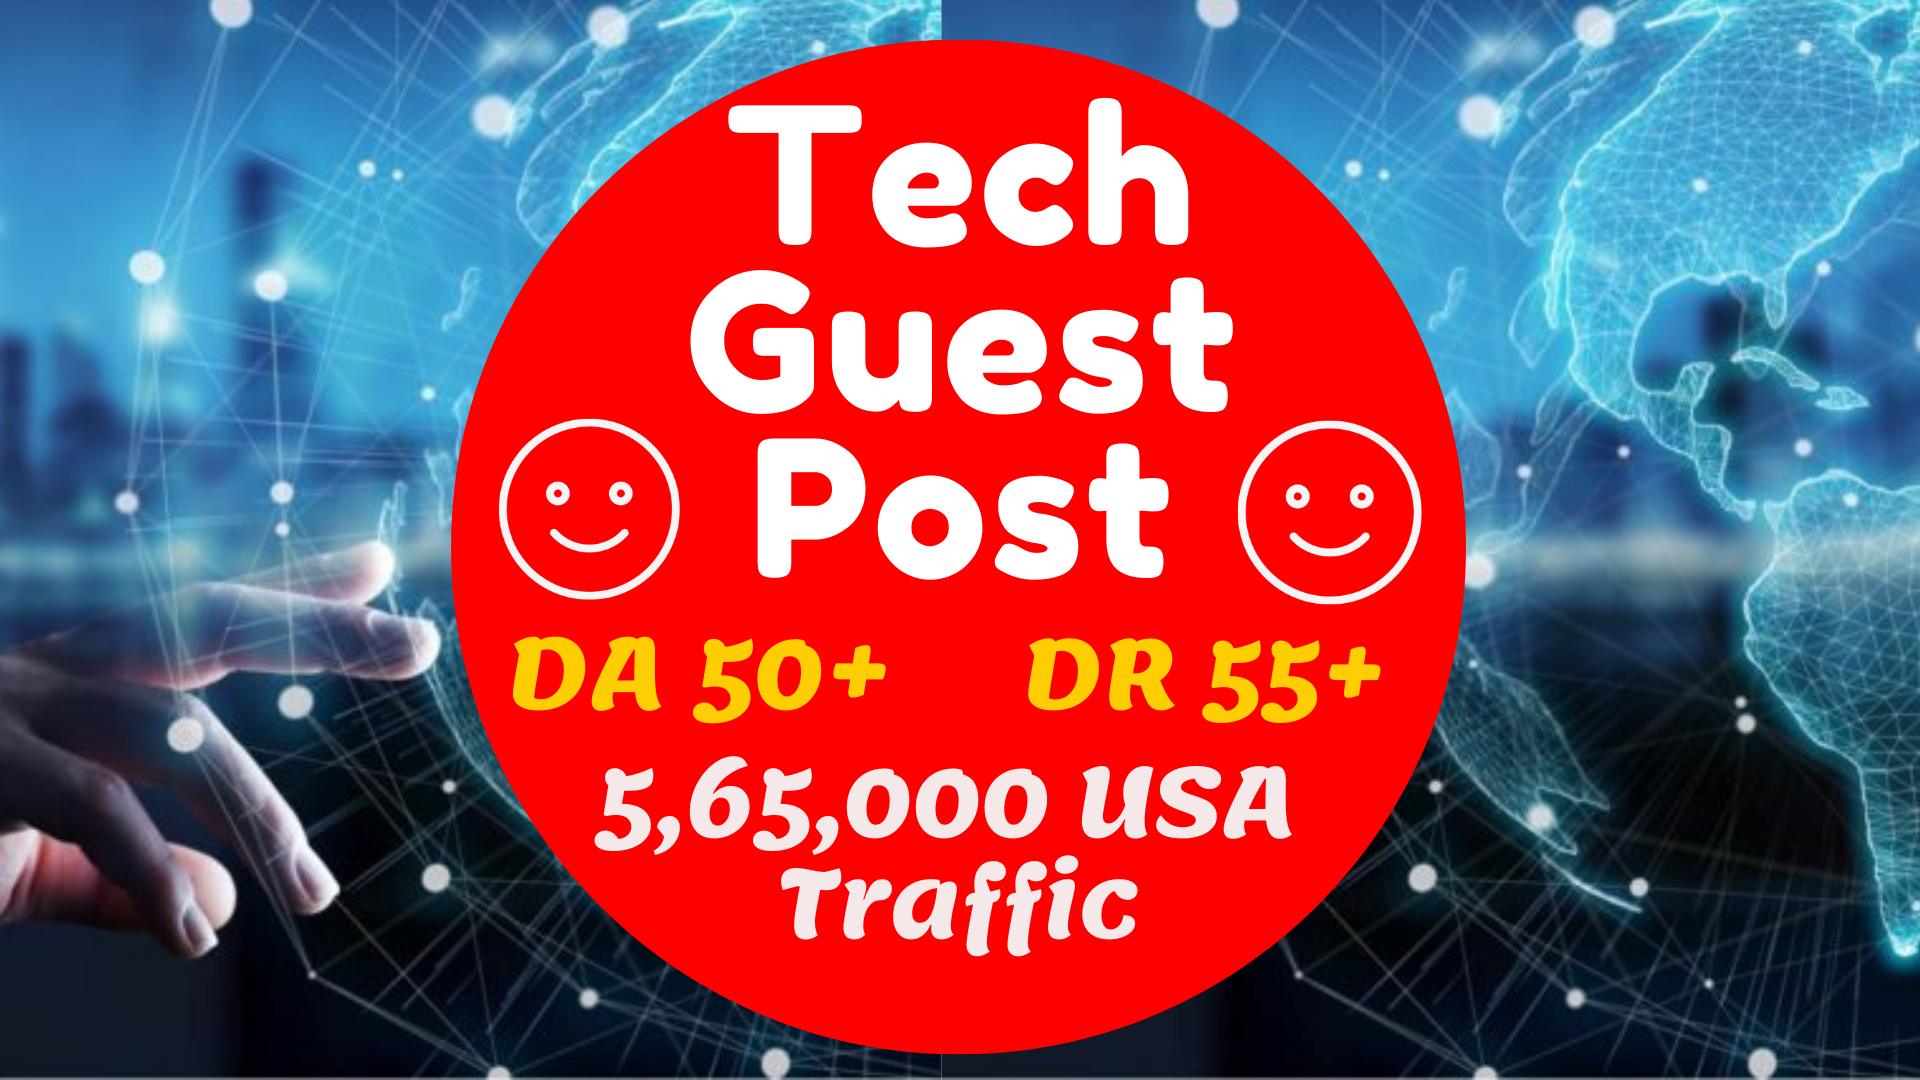 I will do health and tech guest post on da 50 high authority blog